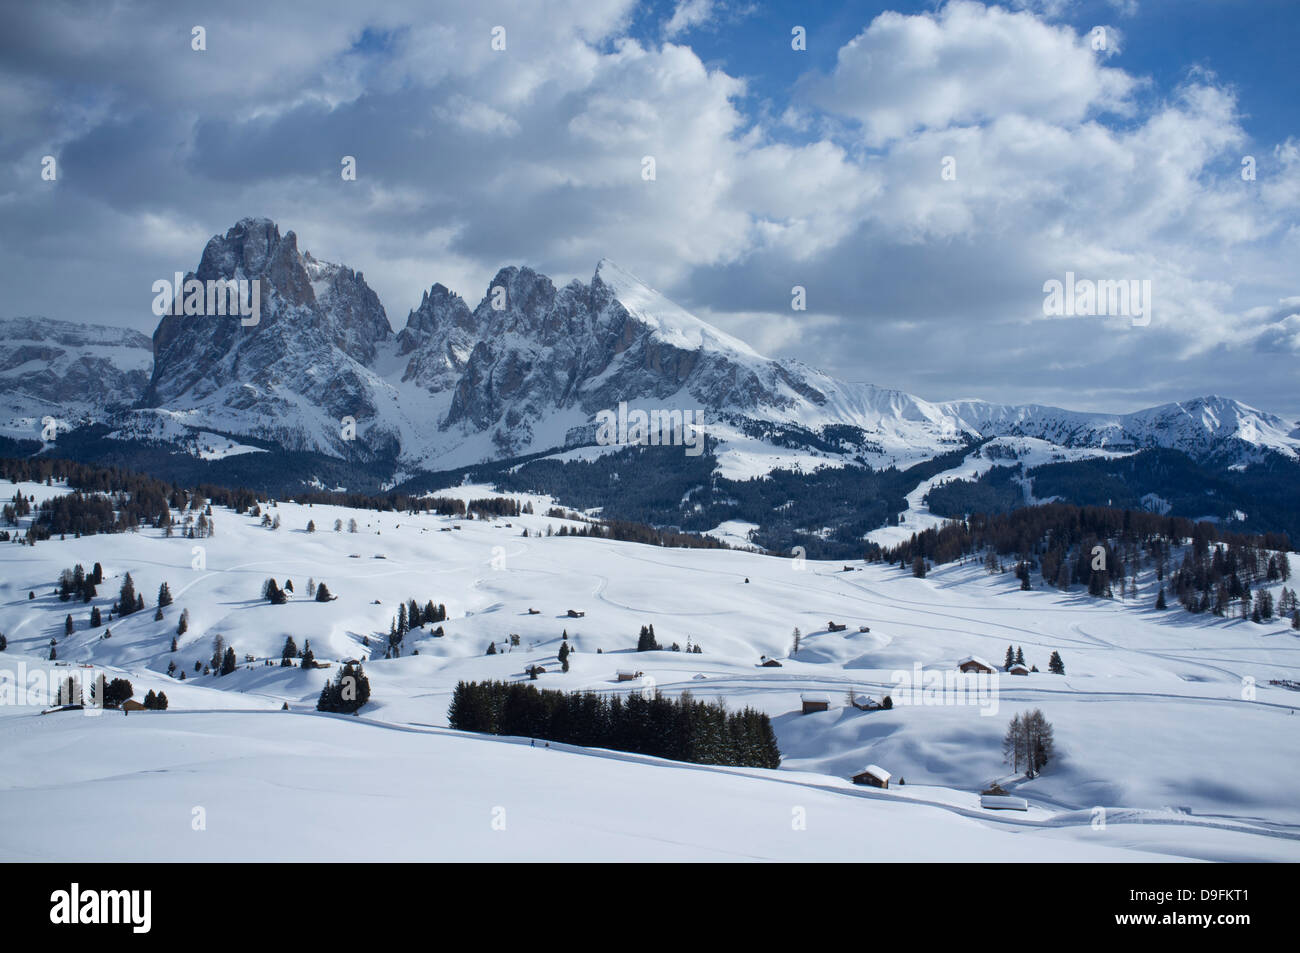 A snowy view of Sassolungo and Sassopiato Mountains behind the Alpe di Siusi ski area in the Dolomites, South Tyrol, - Stock Image